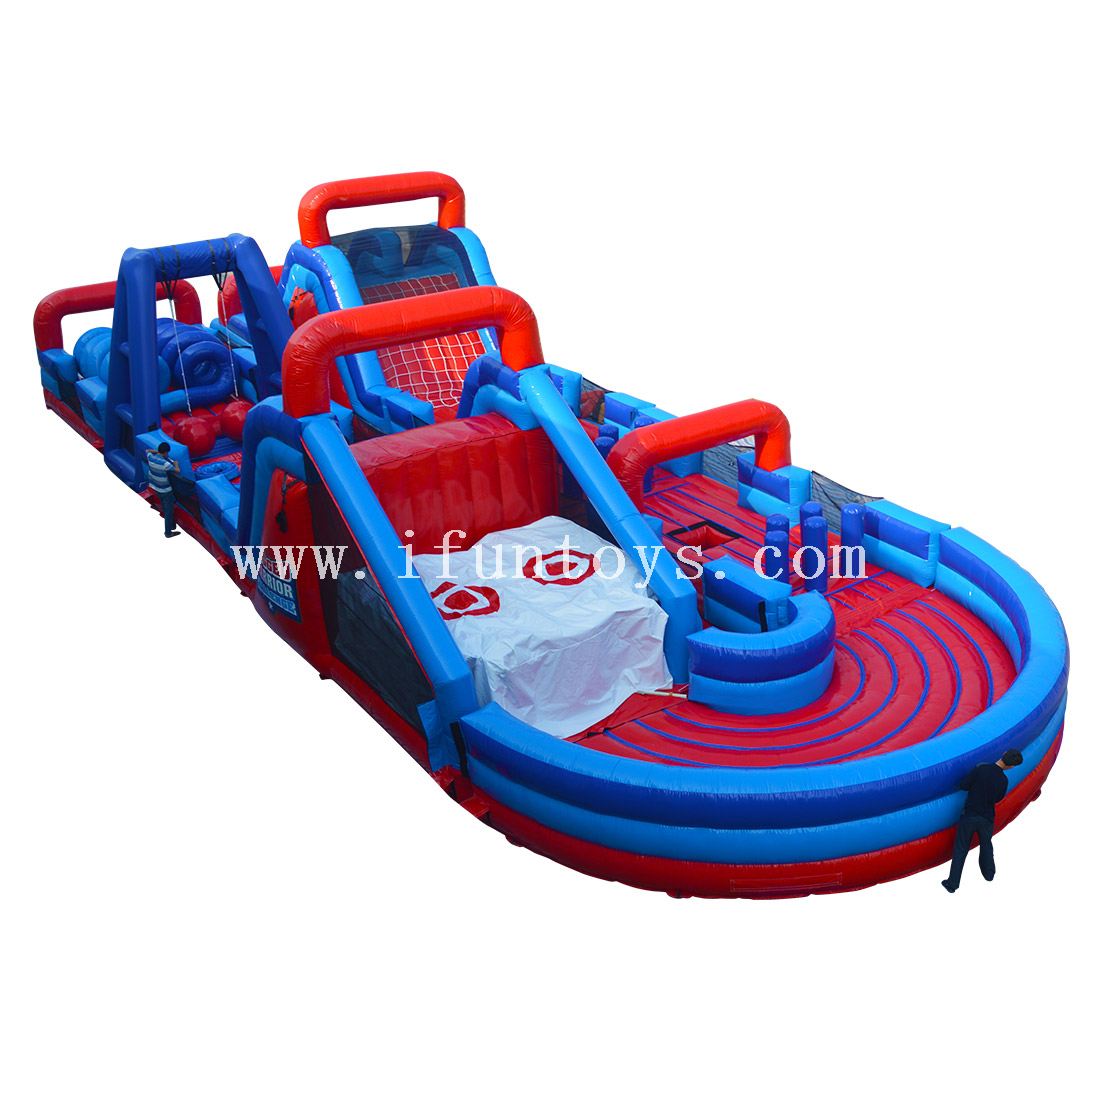 Inflatable Rugged Warrior Obstacle/inflatable Challenge Mega Obstacle Course /inflatable wipeout course For sport game